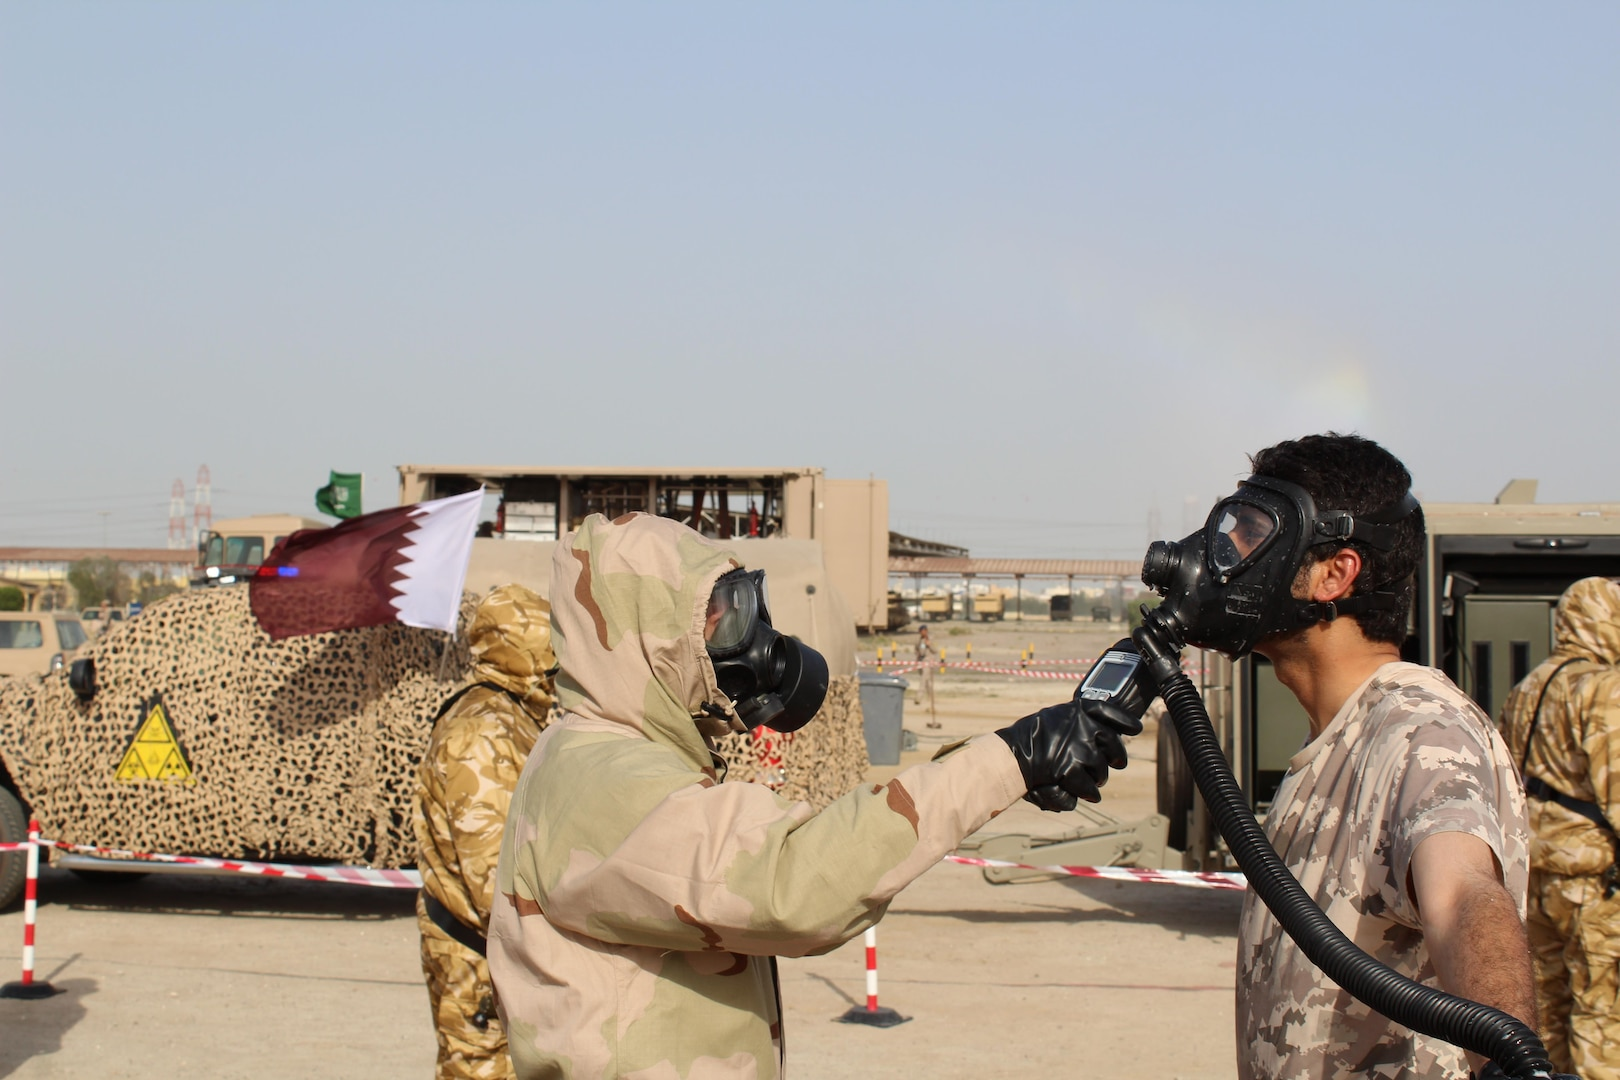 Civilian and military personnel from Gulf Cooperation Council nations and the U.S. conduct chemical, biological, radiological, and nuclear response training as part of exercise Eagle Resolve 17, April 02, 2017, in Kuwait. In this hypothetical scenario, munitions loaded with a mustard gas chemical agent landed near a mosque resulting in 5-10 casualties. After detecting and identifying the chemical agent, response personnel deployed, triaged, evacuated and treated casualties, and secured the area. The exercise tests participant's ability to respond as a combined joint task force. Exercise Eagle Resolve is the premier U.S. multilateral exercise within the Arabian Peninsula. Since 1999, Eagle Resolve has become the leading engagement between the U.S. and Gulf Cooperation Council nations to collectively address the regional challenges associated with asymmetric warfare in a low-risk setting. (Photo by U.S. Army Staff Sgt. Francis O'Brien)